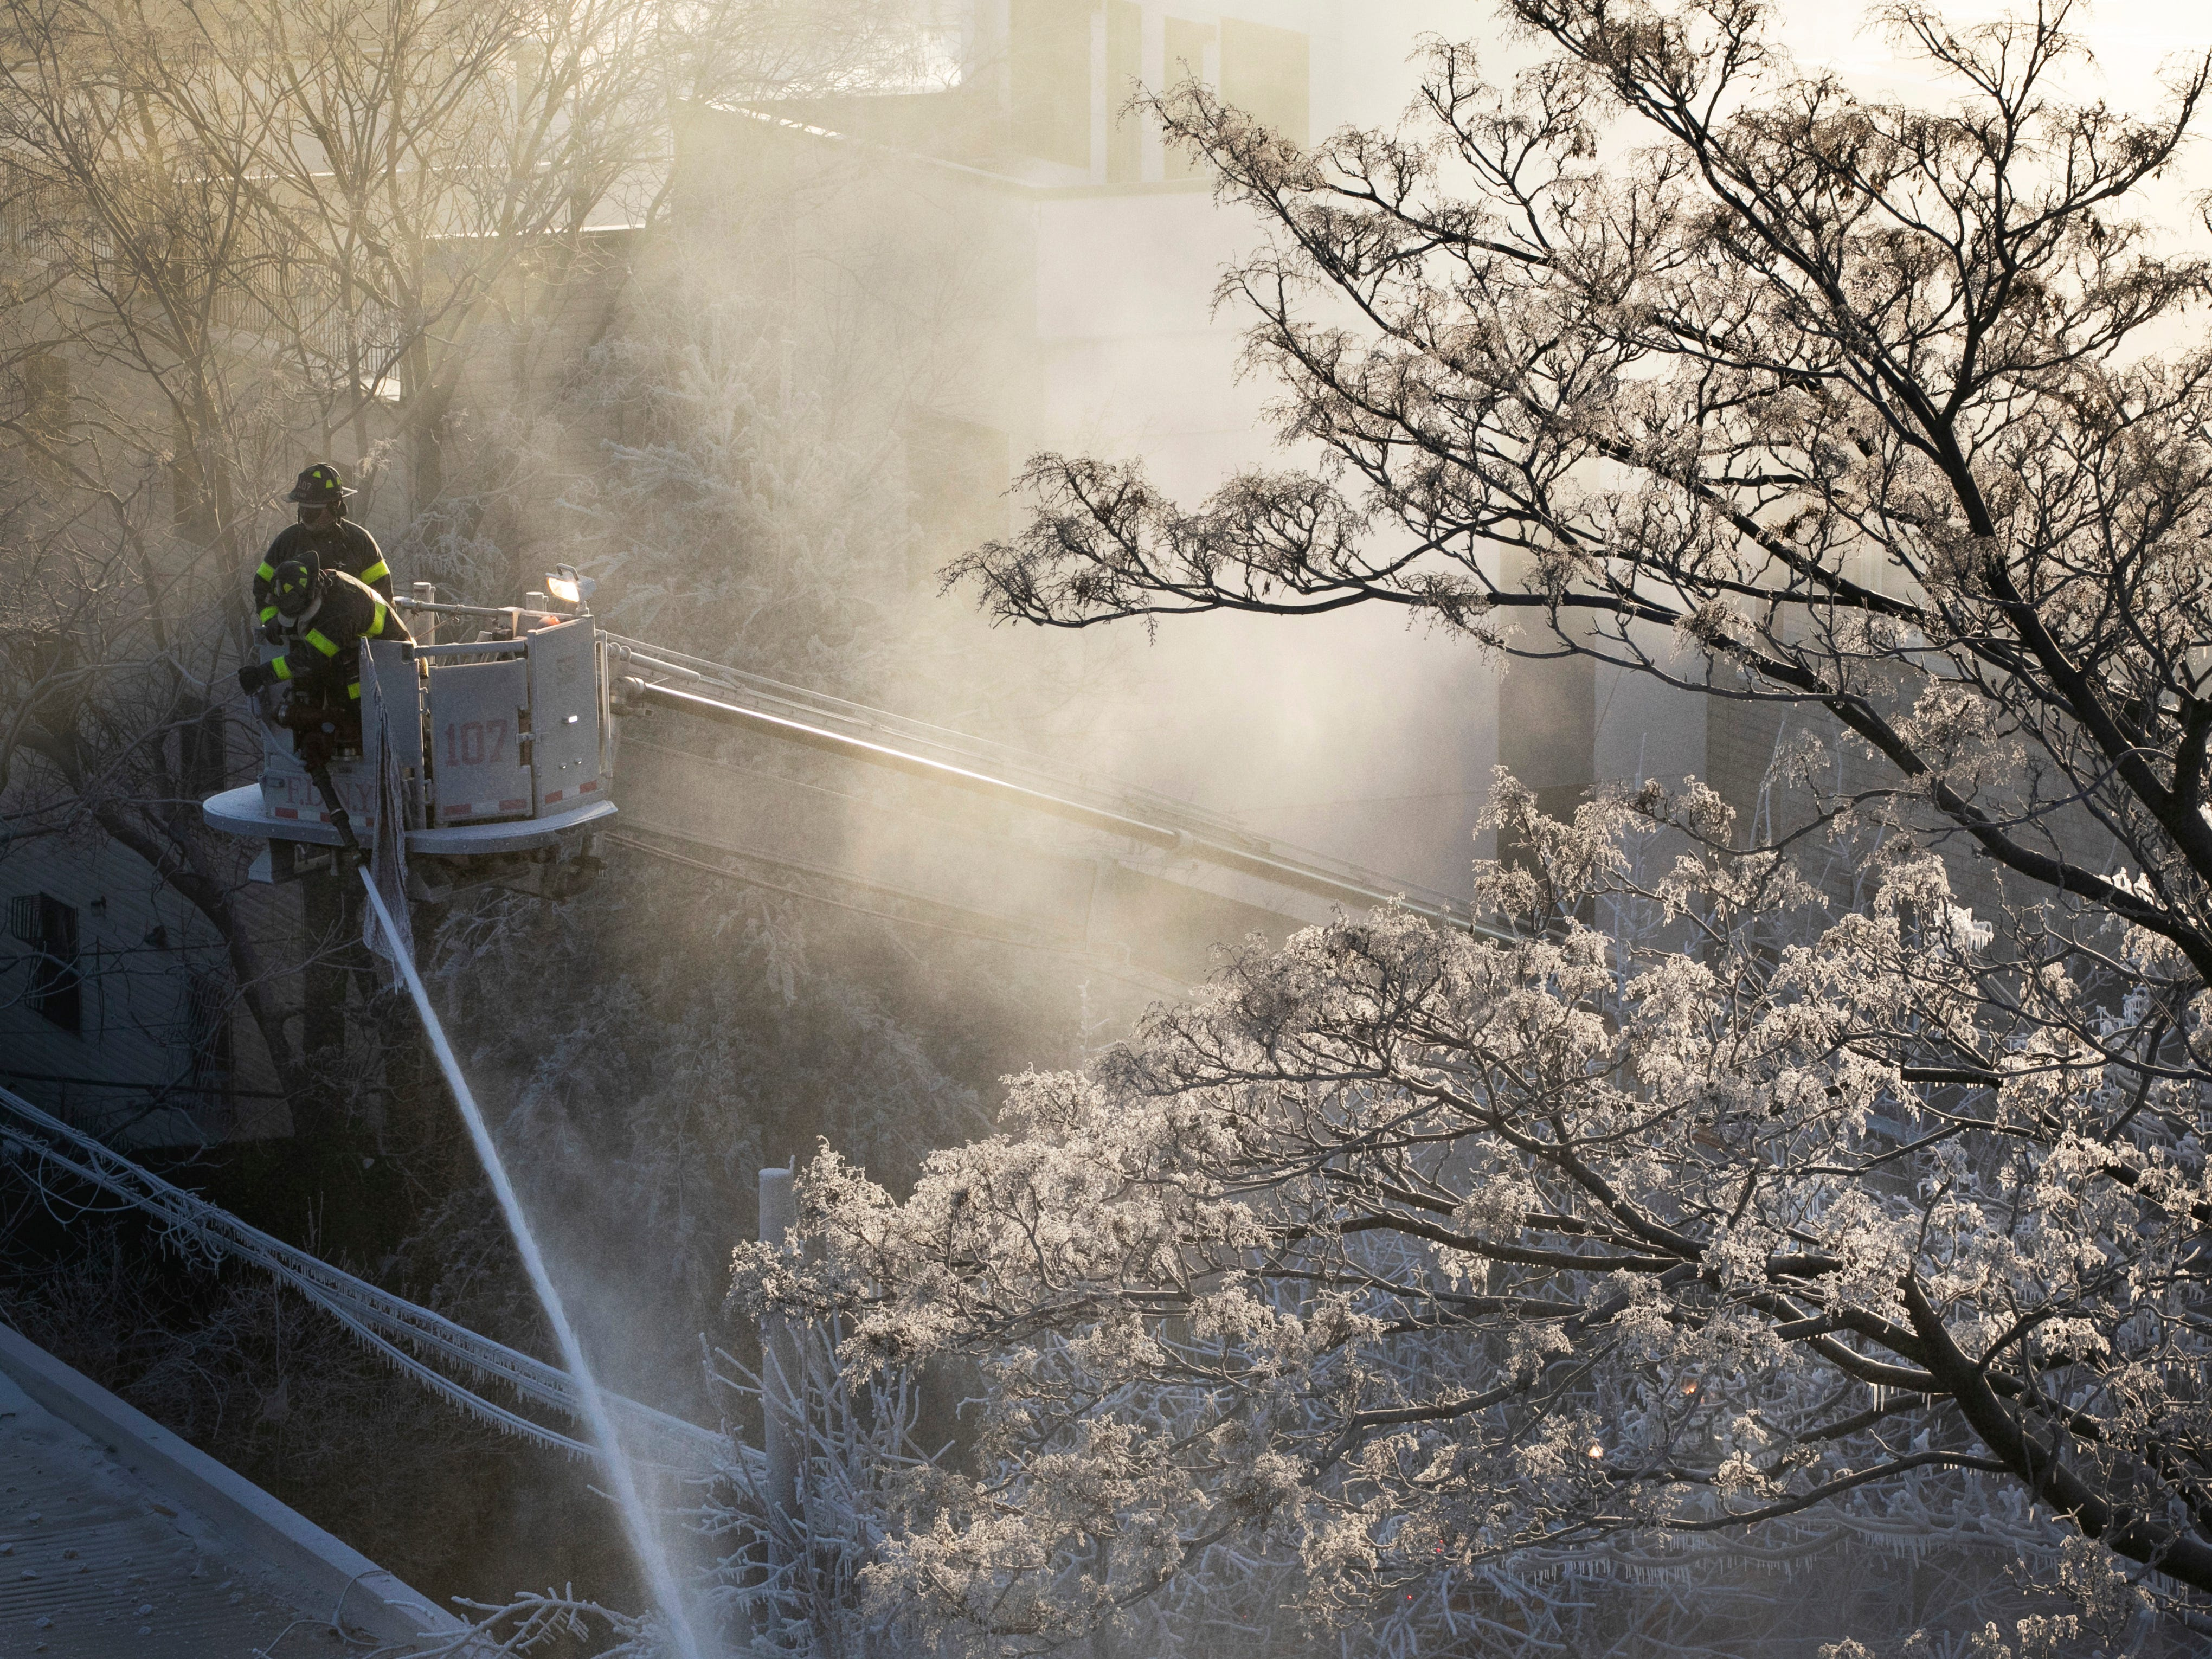 Ice forms on tree branches as New York firefighters battle a blaze in a commercial building in the Bedford Stuyvesant neighborhood of Brooklyn, Jan. 31, 2019 in New York.